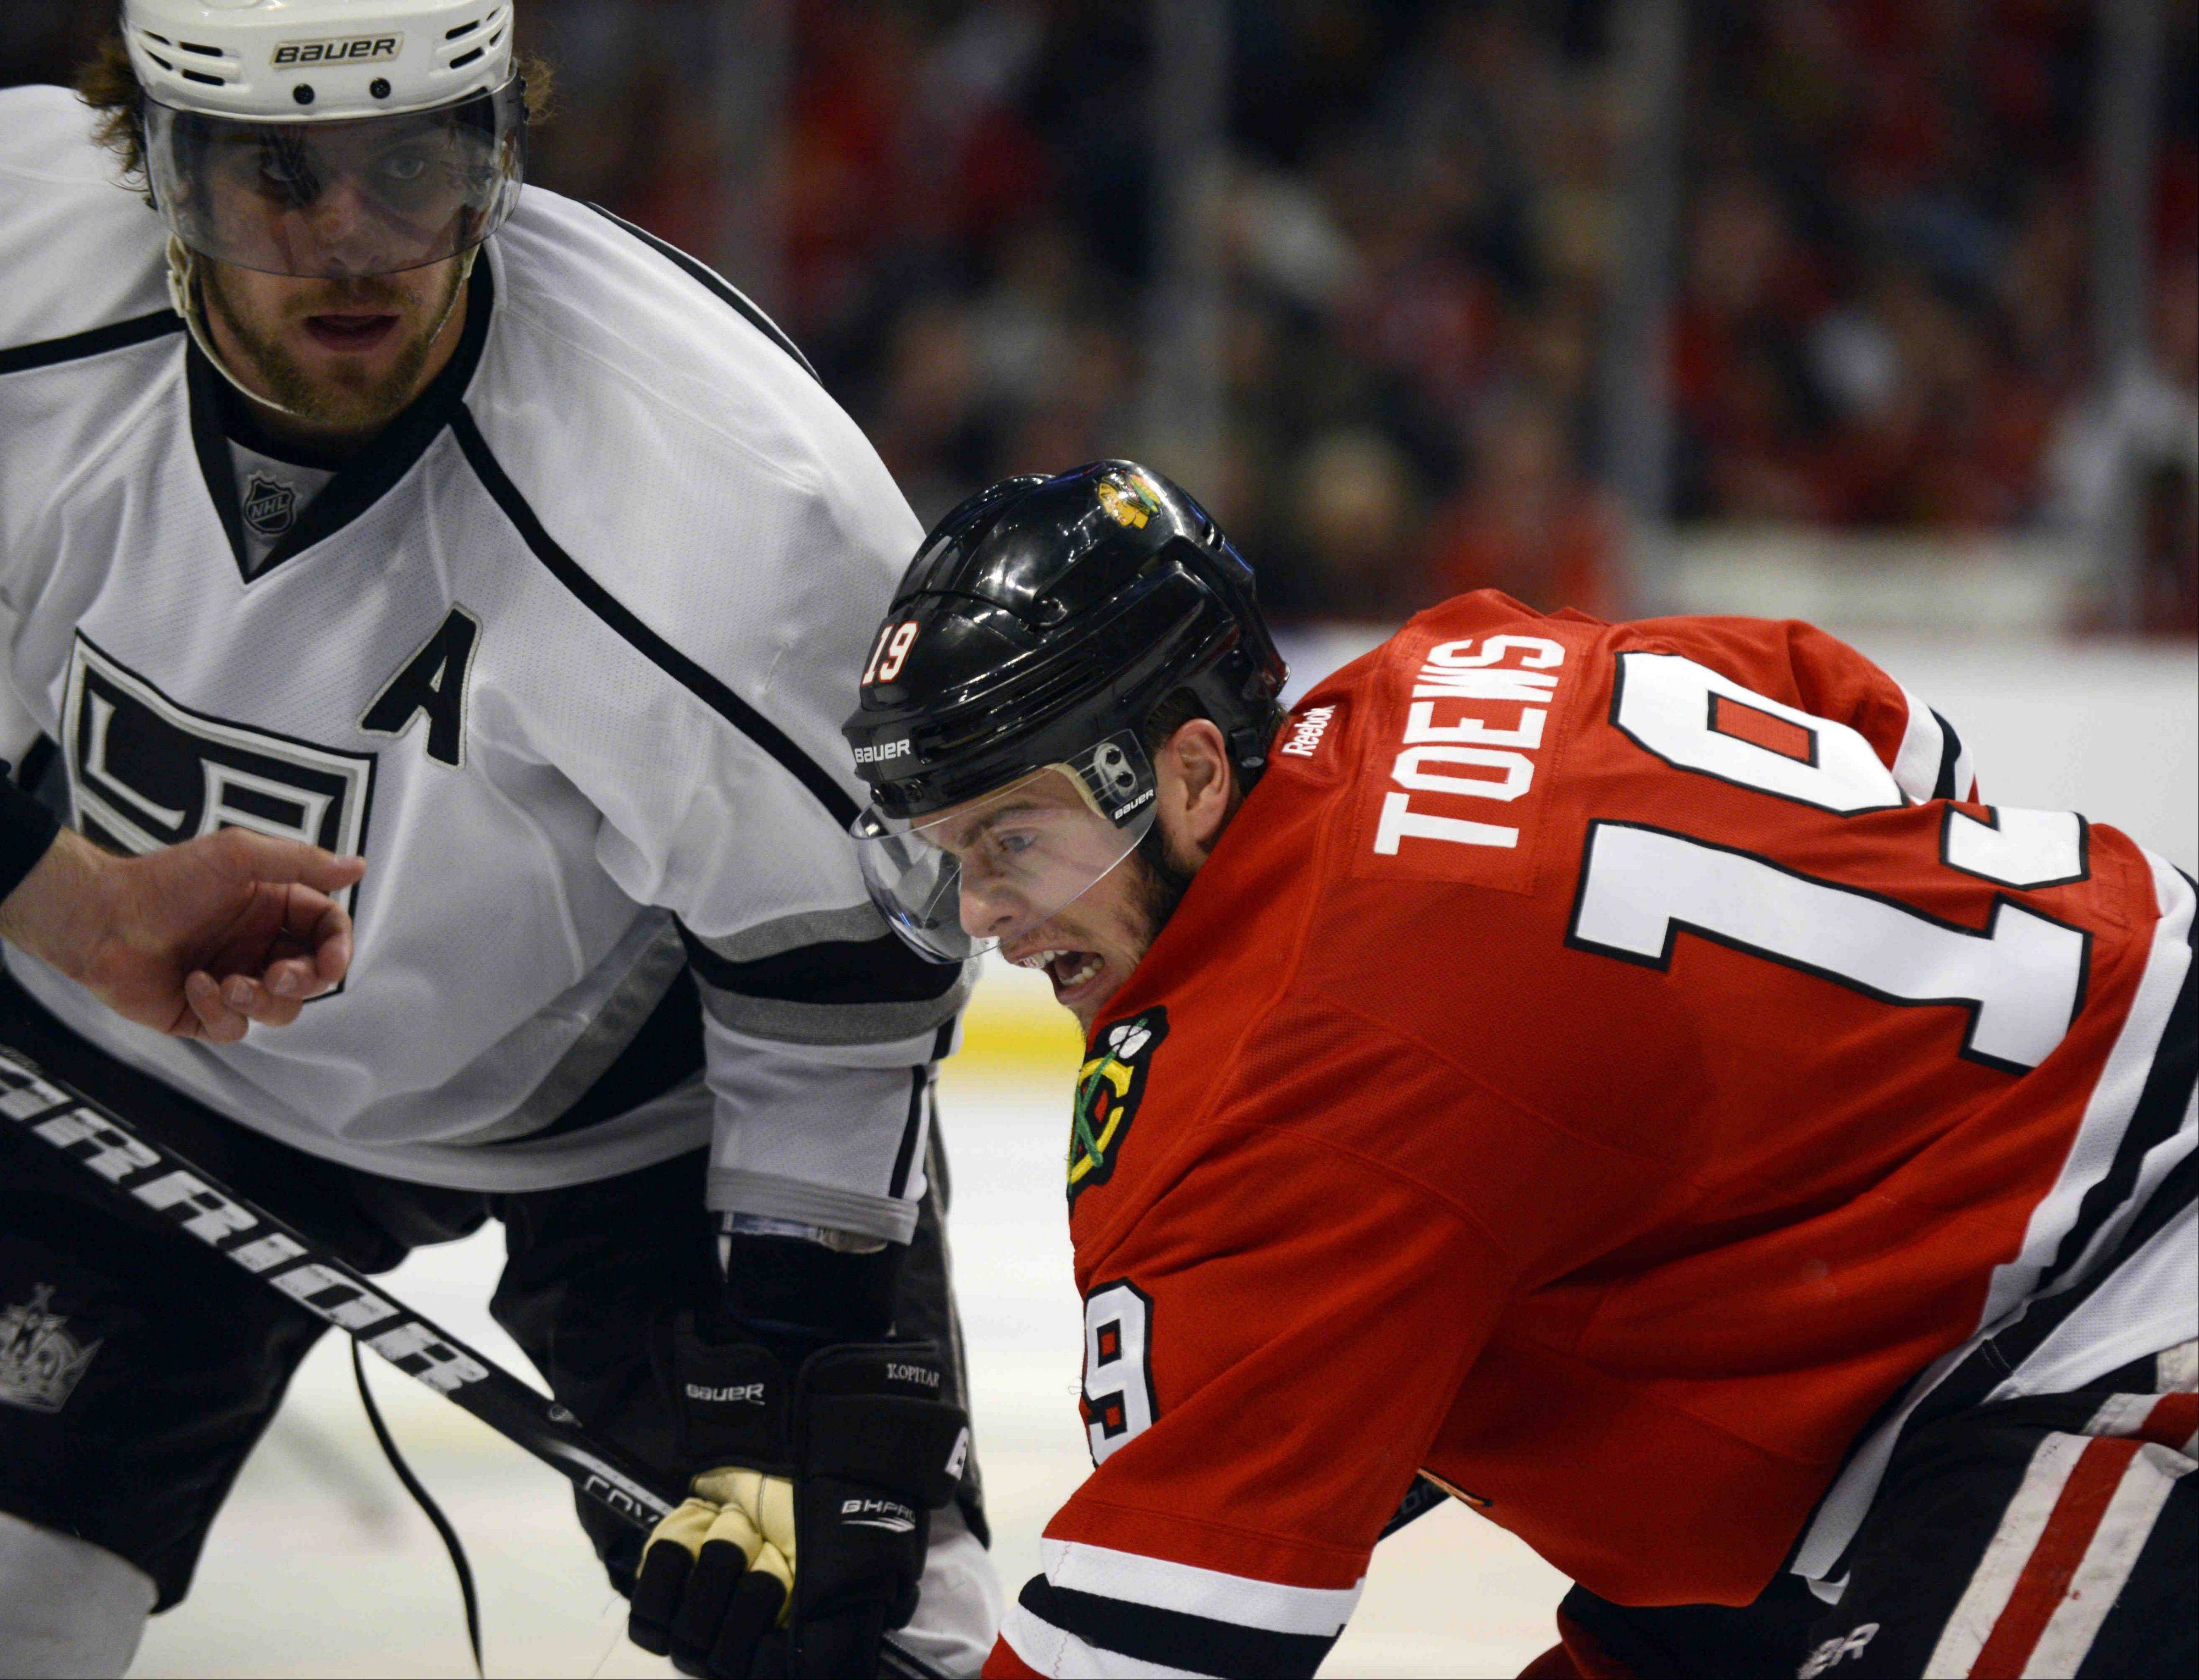 Chicago Blackhawks center Jonathan Toews battles with Los Angeles Kings center Anze Kopitar in a face off during game 2 of the NHL Western Conference finals at the United Center Sunday night in Chicago.